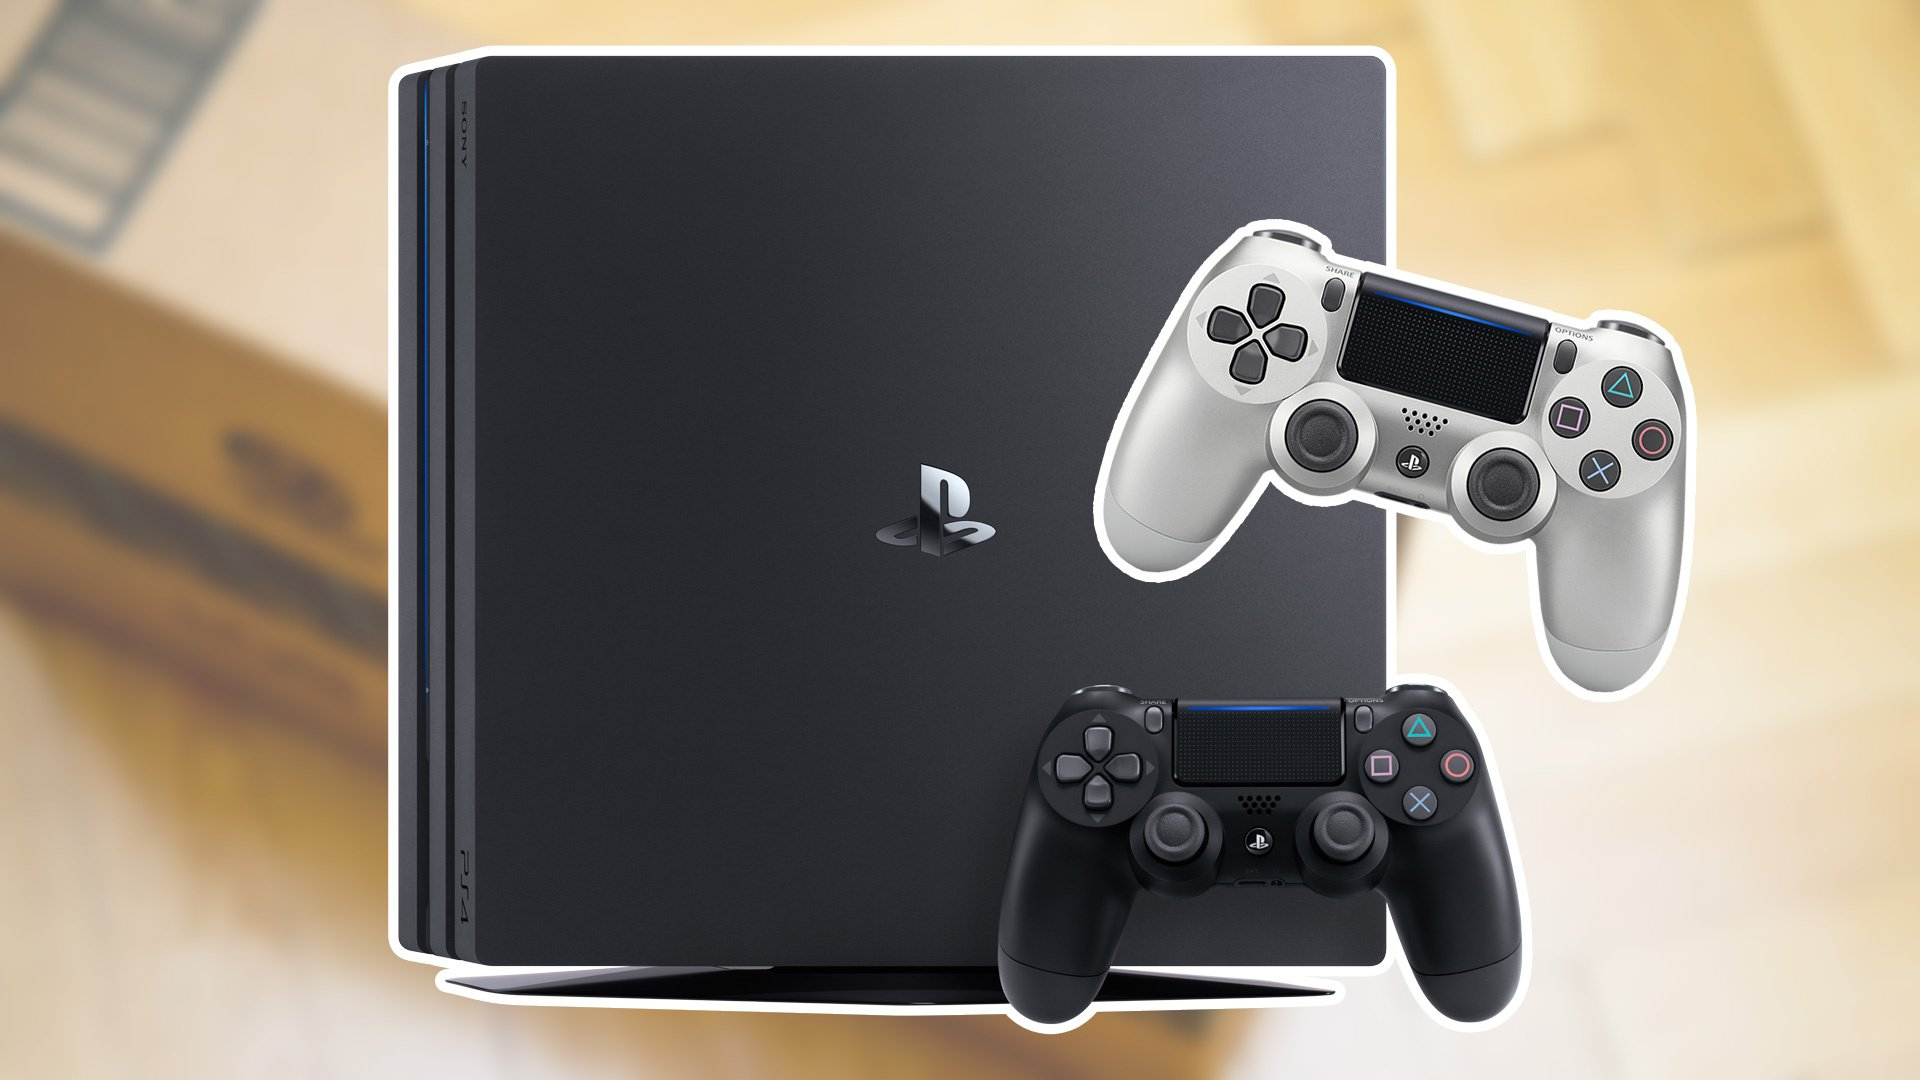 Deals Cheap PS Pro PSVR And PlayStation Games In UK Amazon - Ps4 spiele minecraft amazon